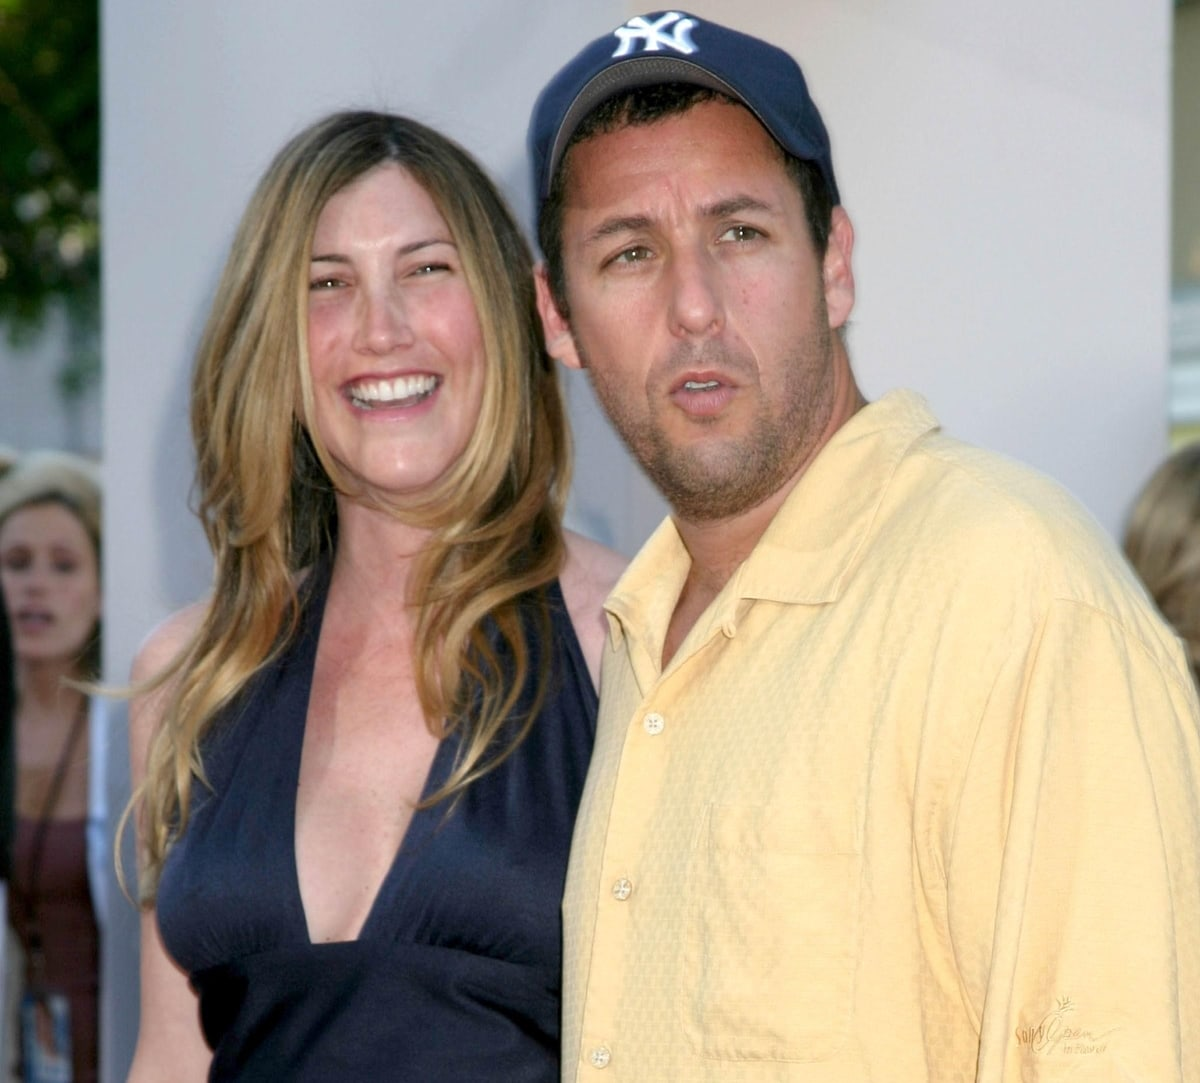 Adam Sandler and his wife Jackie met on the set of the film Big Daddy in 1999